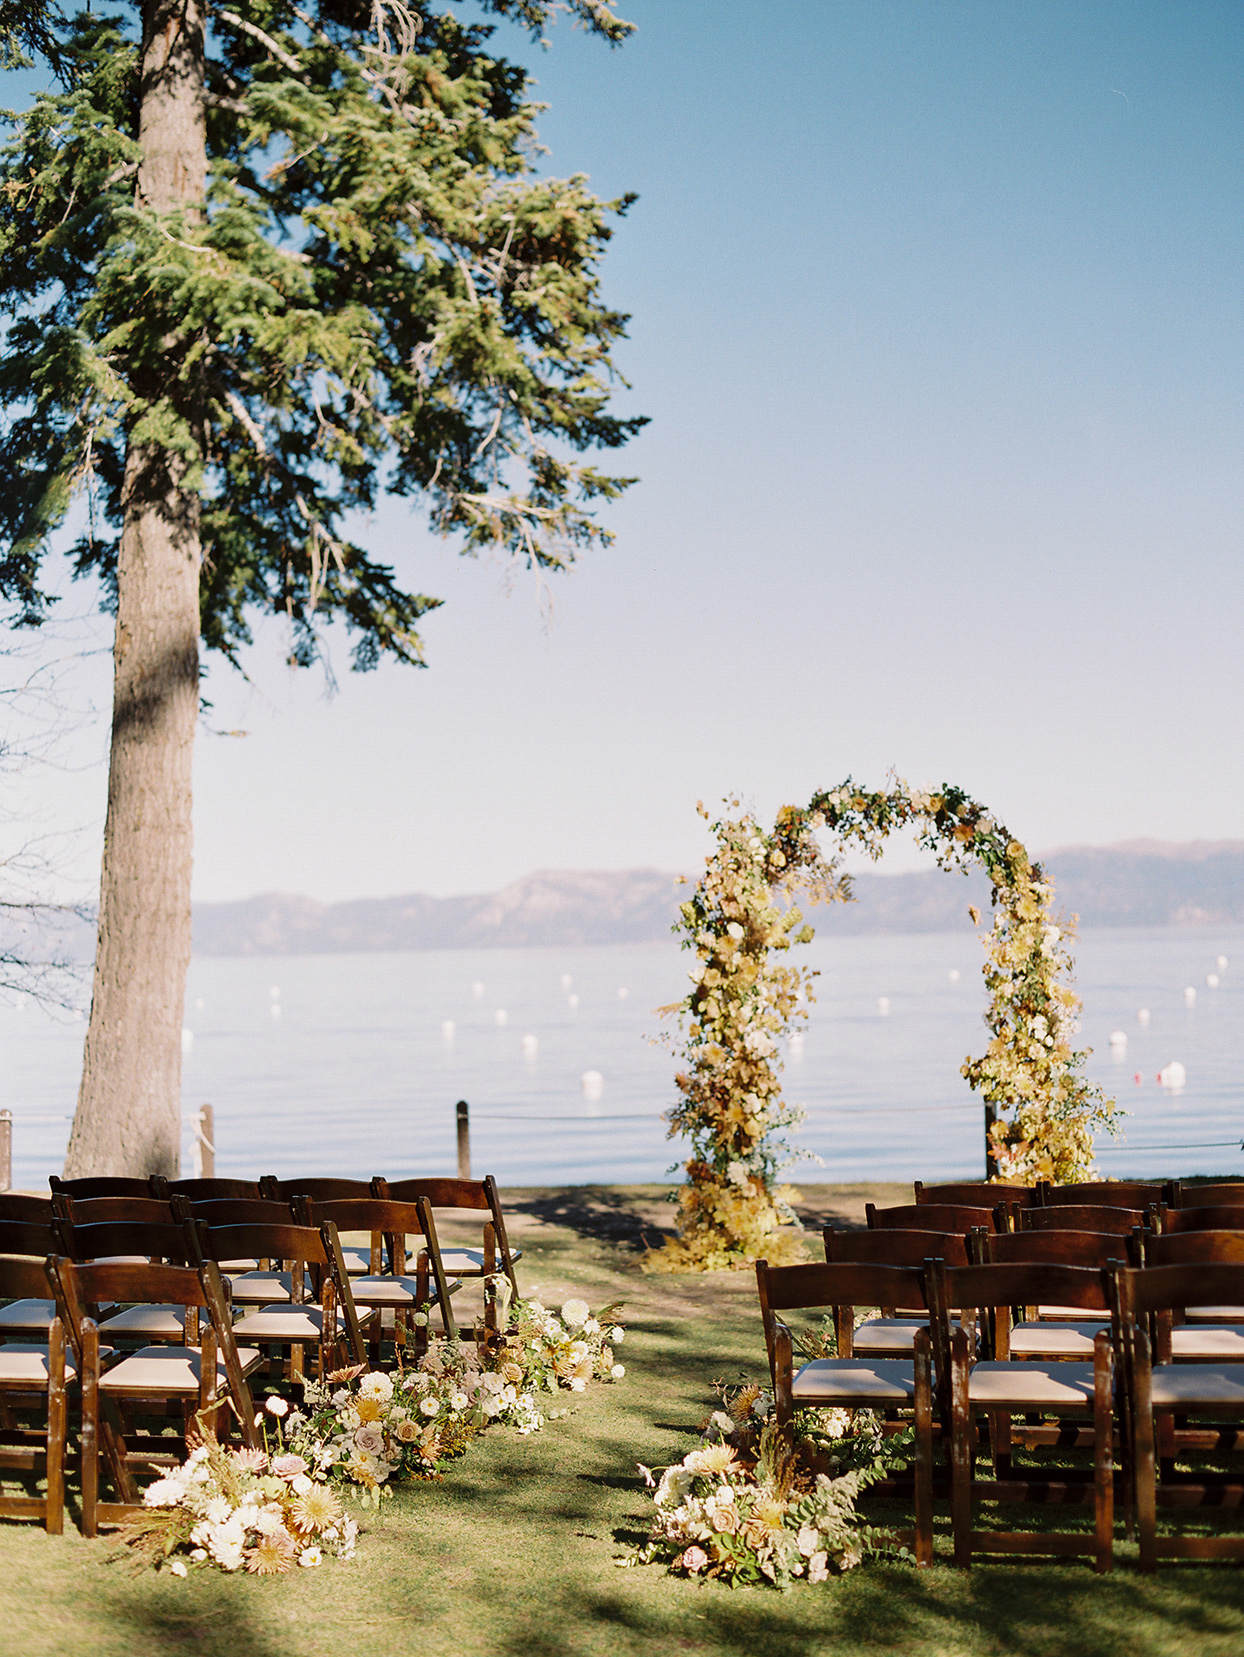 alexandra david wedding ceremony location floral arch overlooking lake